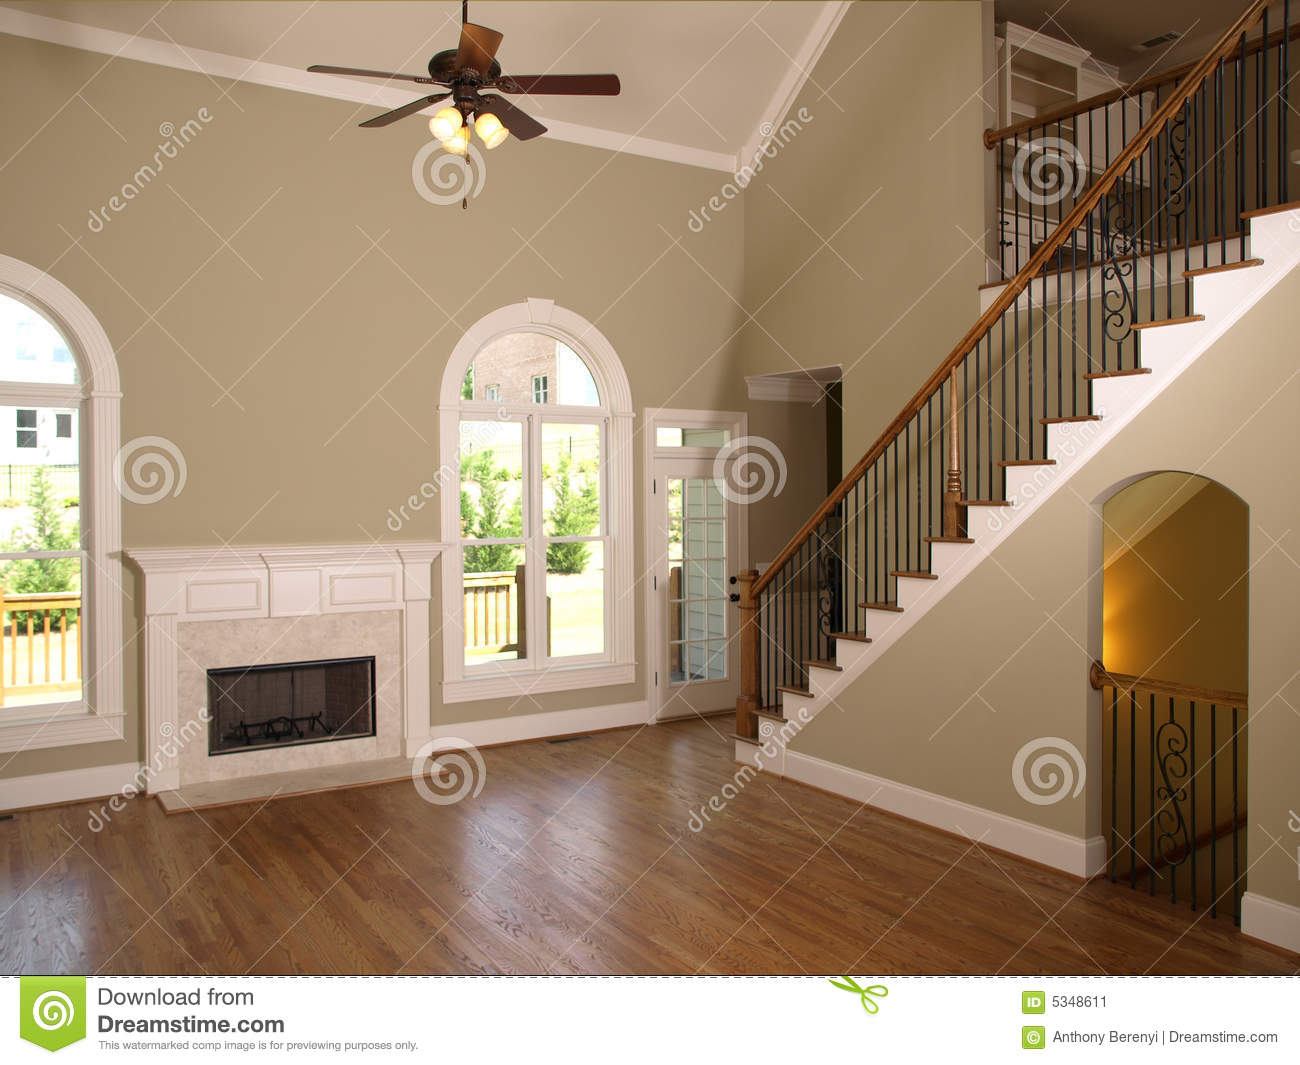 Luxury model home living room staircase stock image image 5348611 - Home and living ...